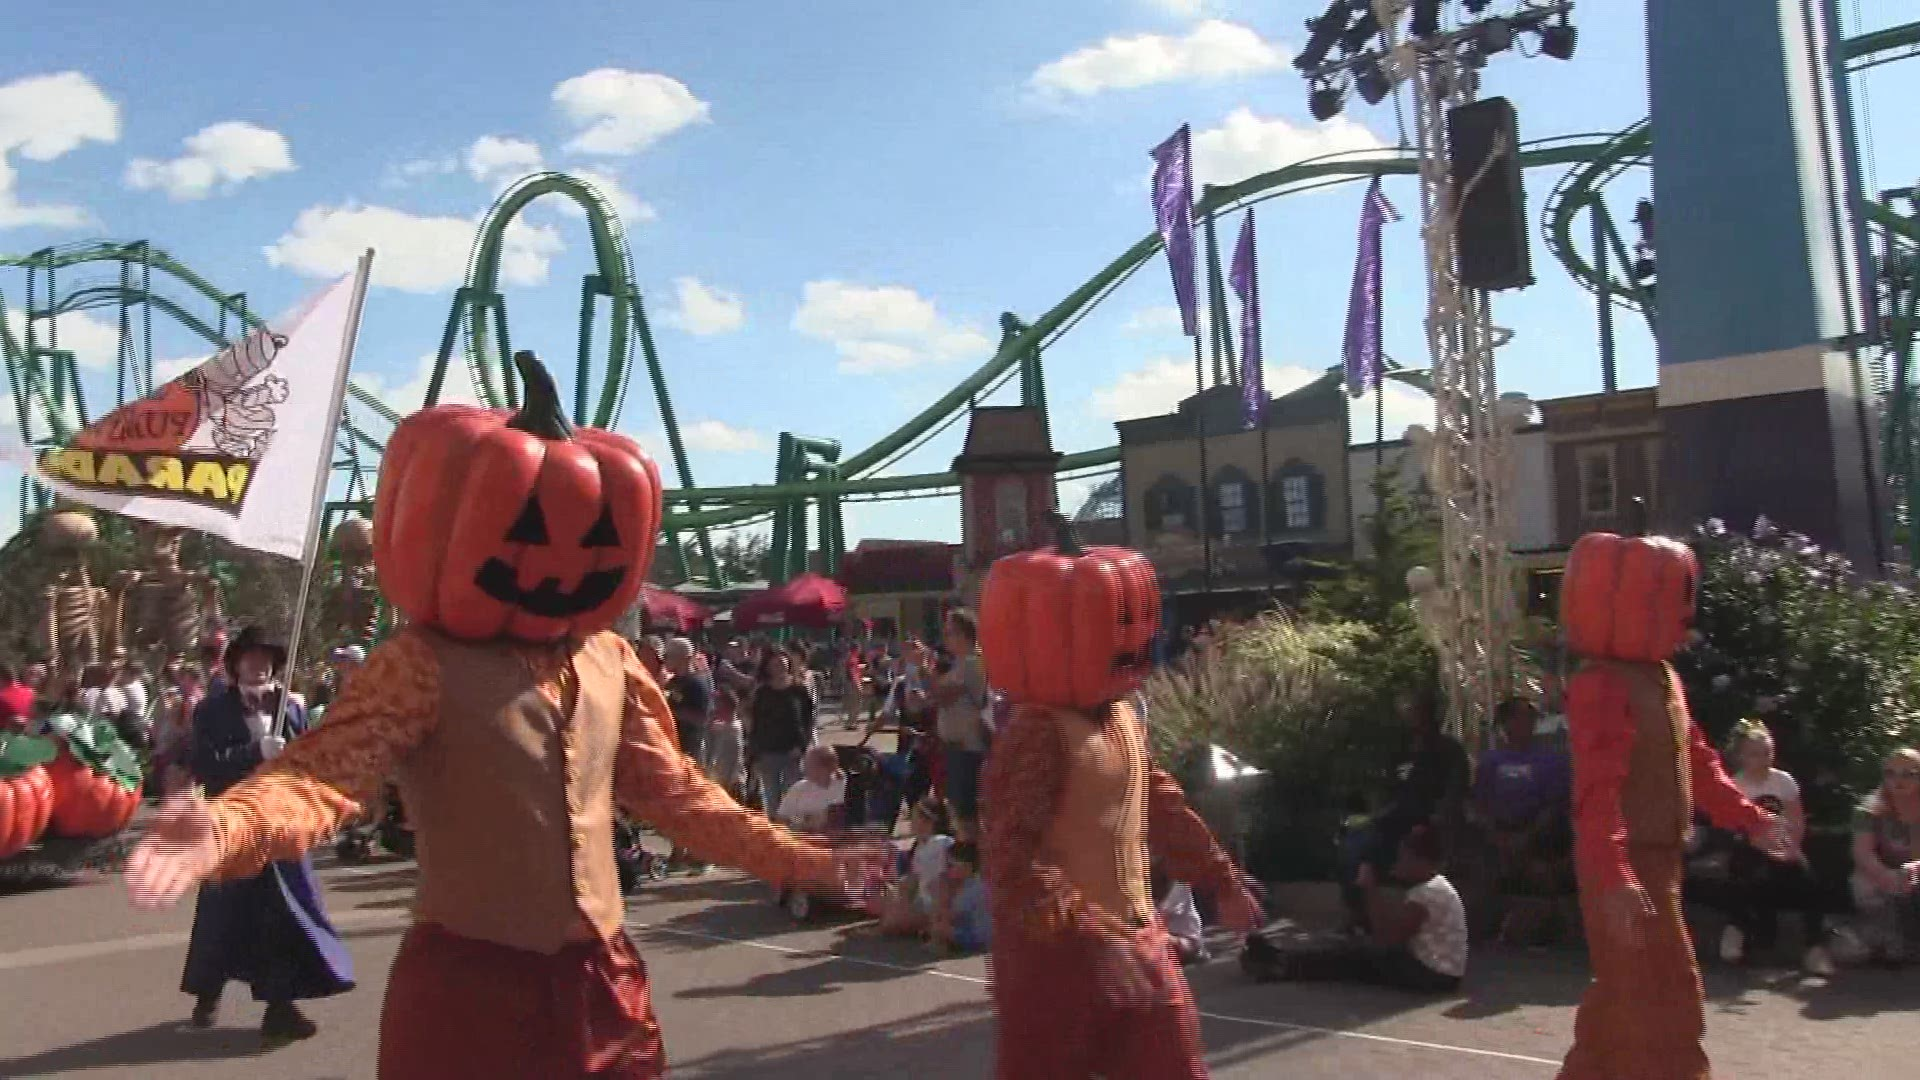 Boise Halloween Events 2020 What is replacing HalloWeekends at Cedar Point? New event planned